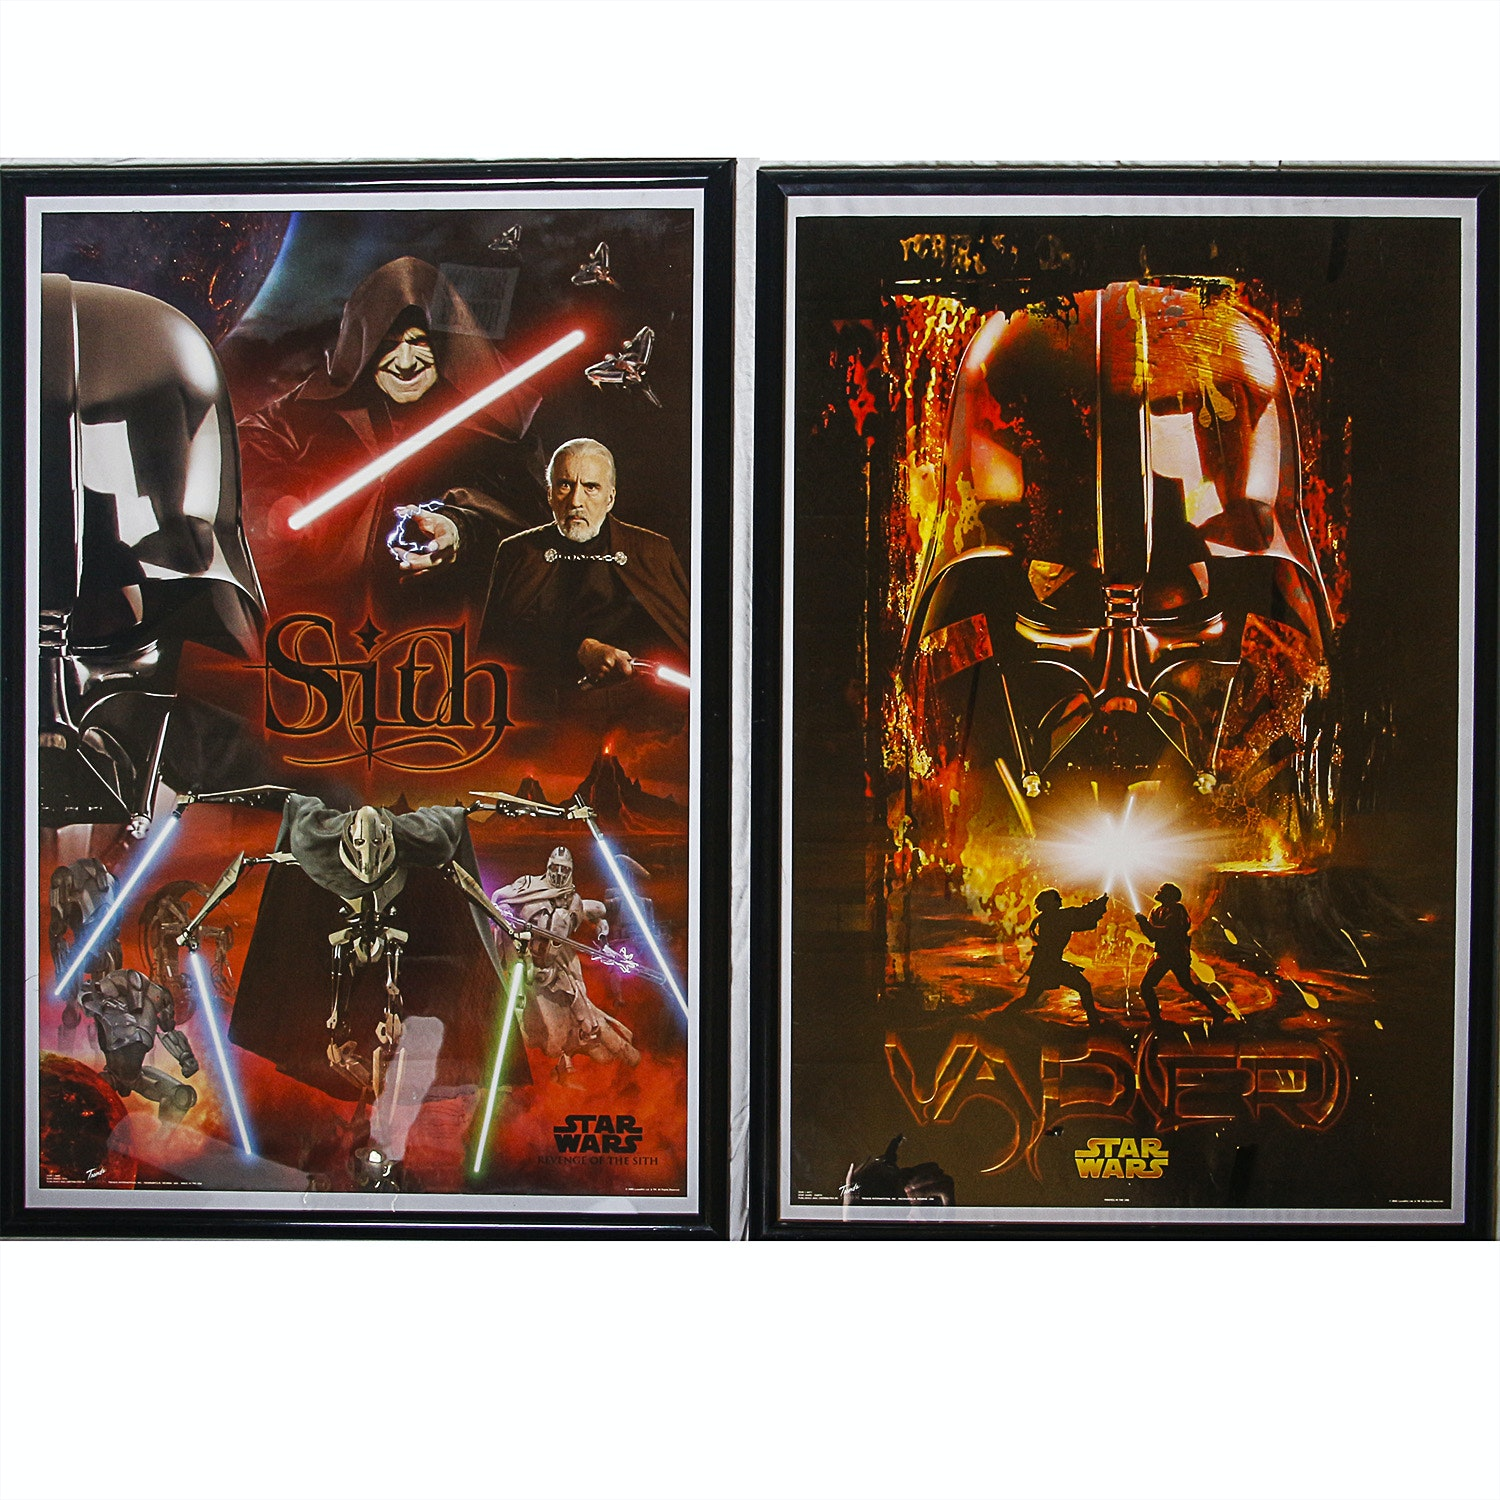 """Star Wars: Episode III Revenge of the Sith"" and Darth Vader Posters"